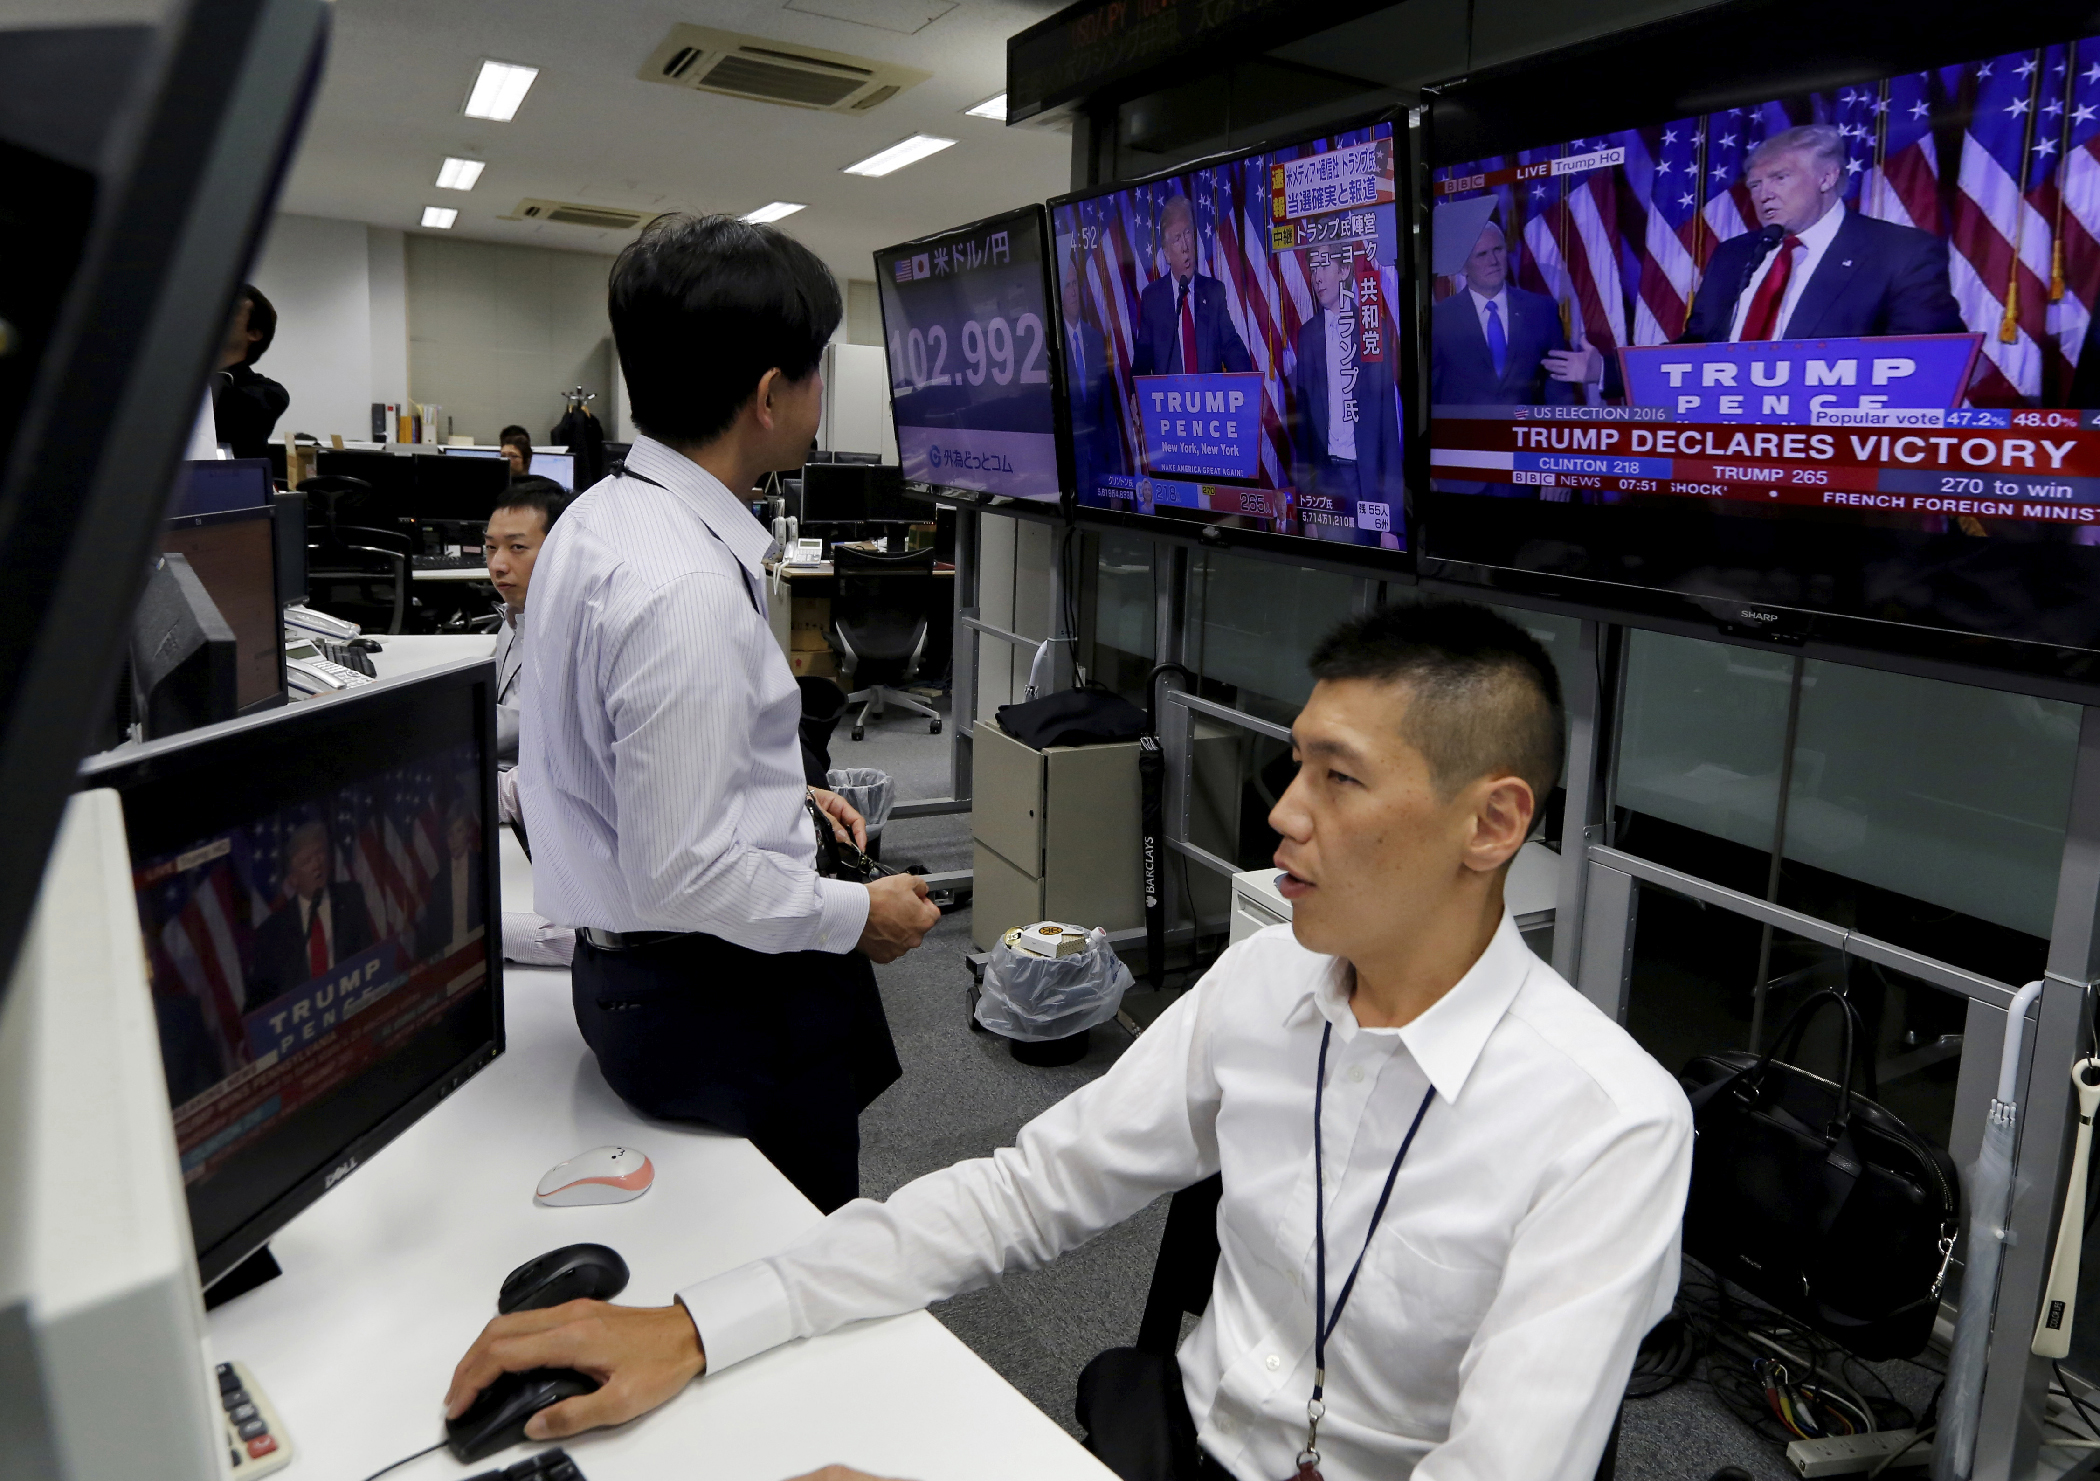 In Japan, traders working a foreign exchange desk watch U.S. election results. The Nikkei index fell more than 900 points as Trump's win became real.